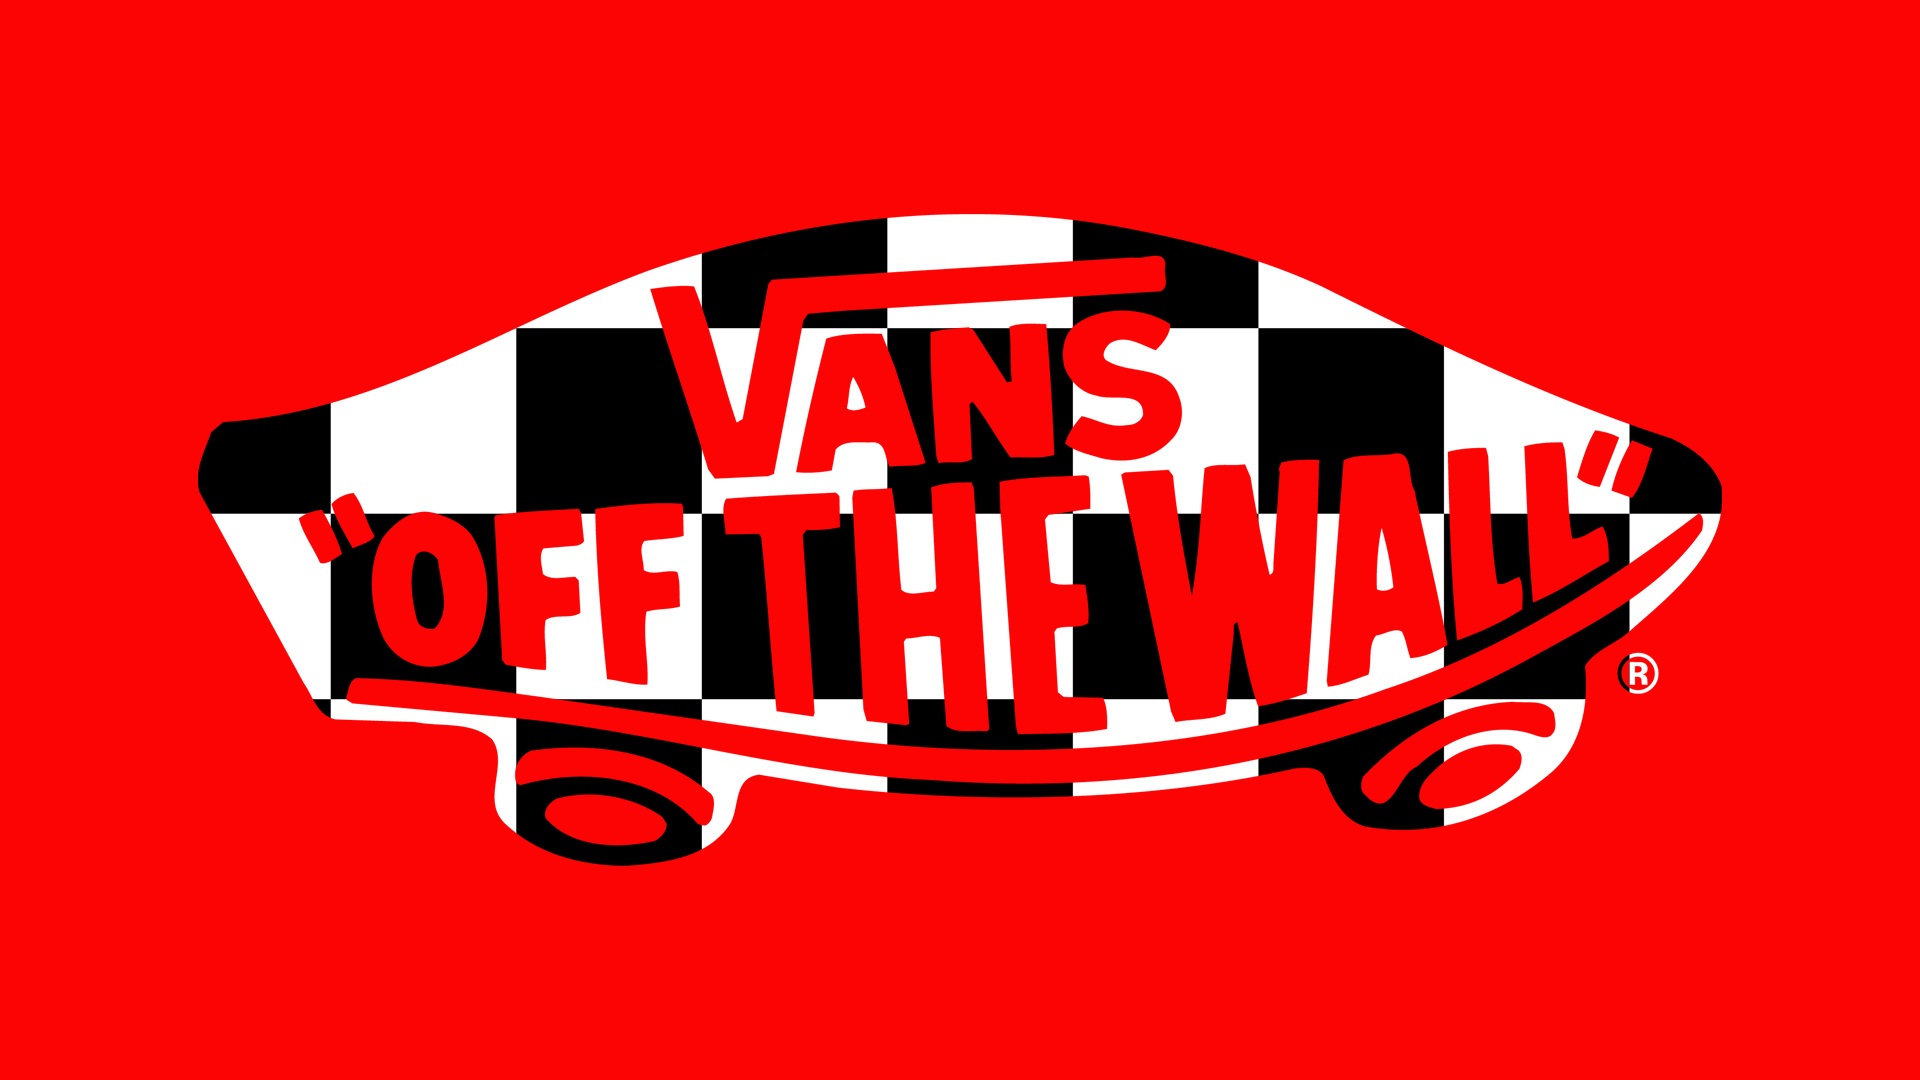 vans skateboard wallpaper 3d - photo #14